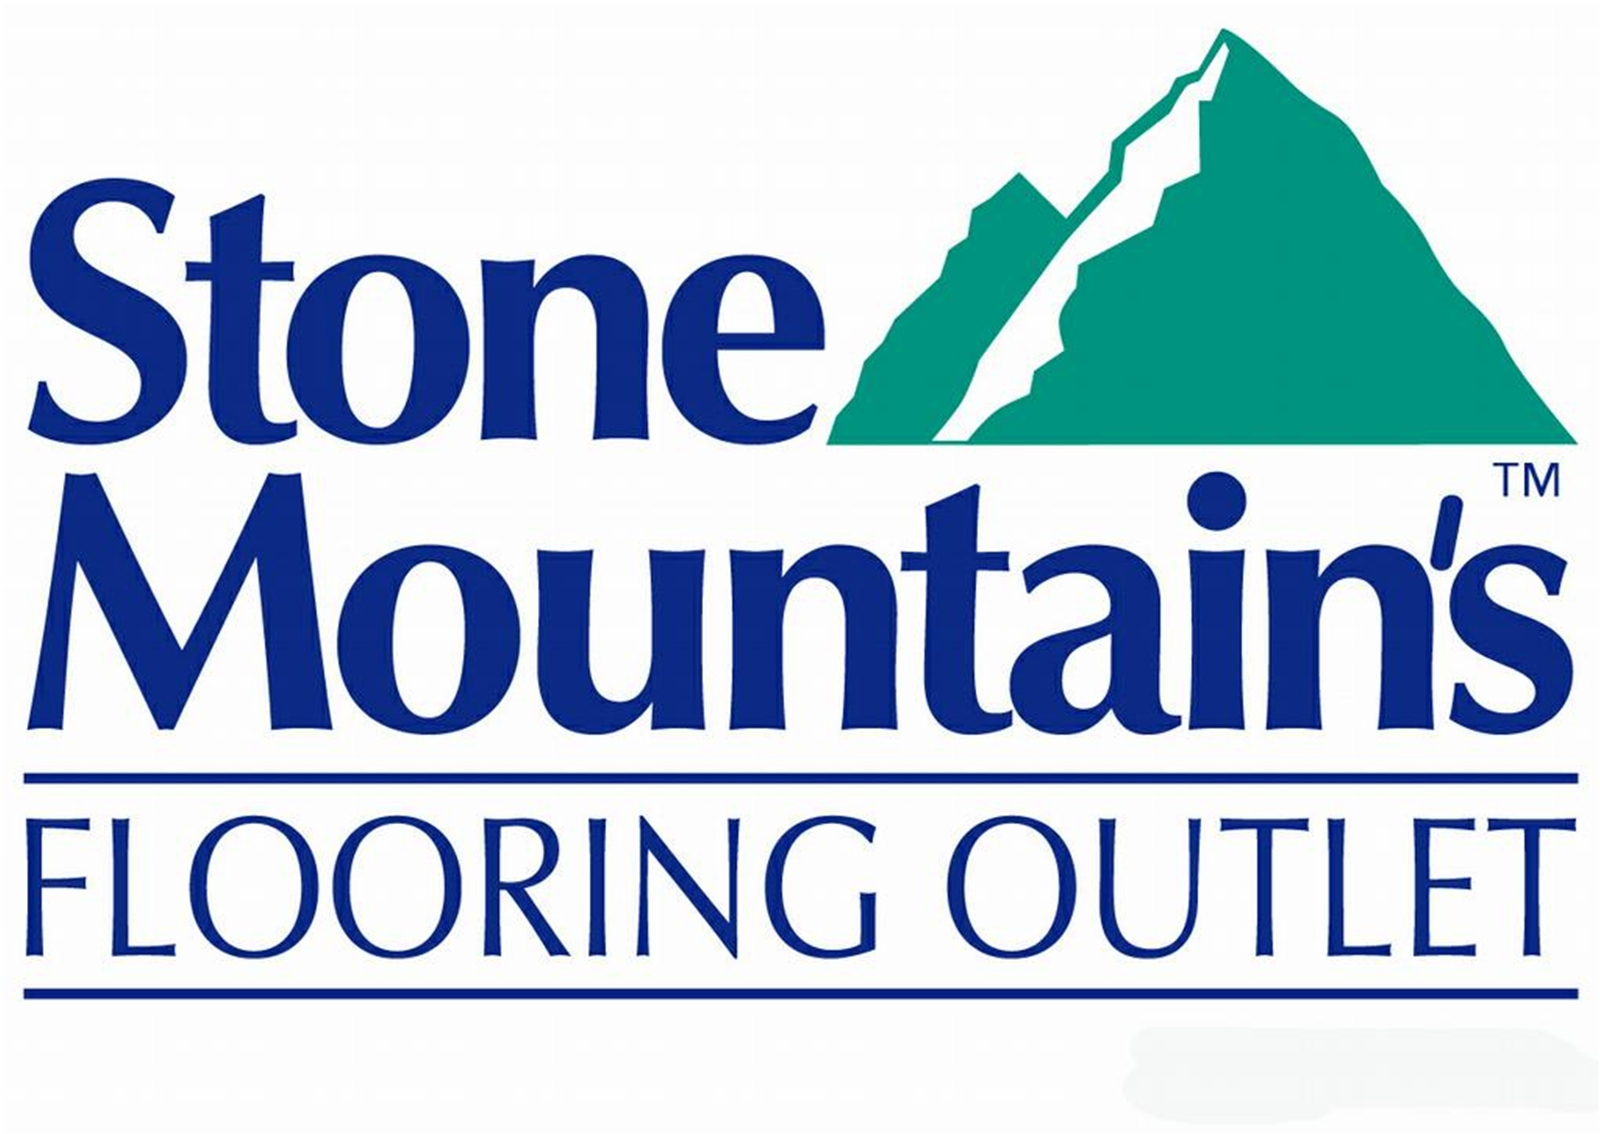 Stone Mountains Flooring Outlet